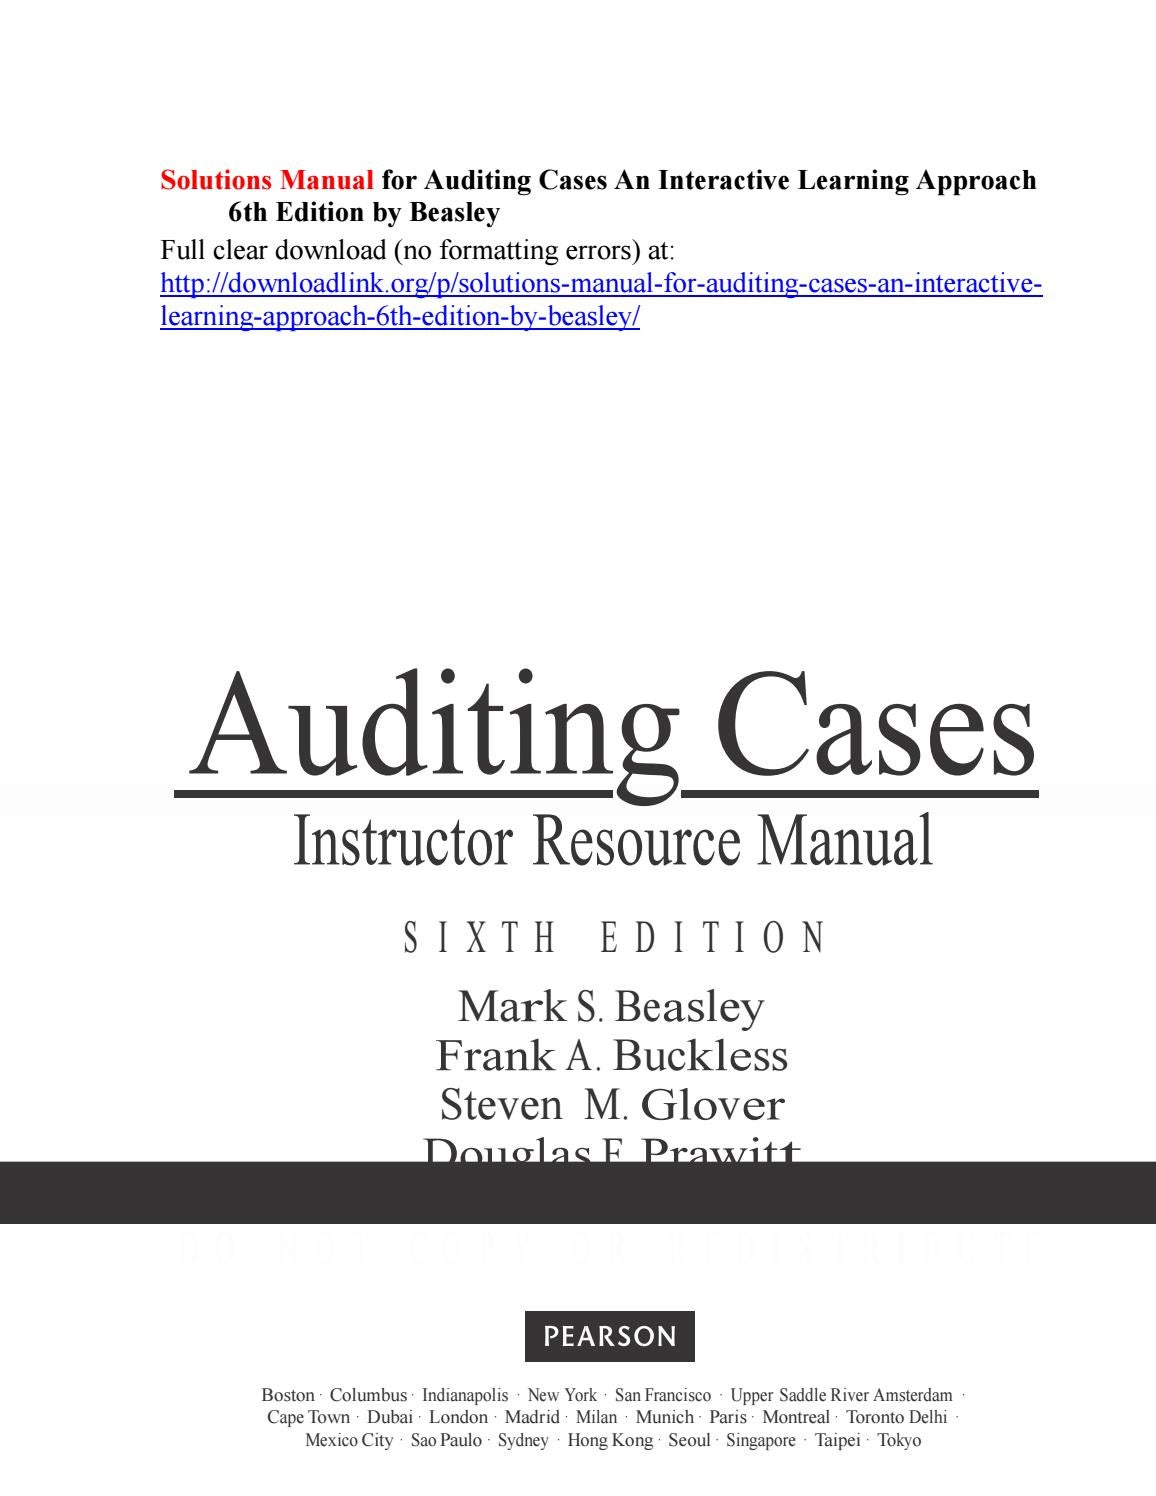 Solutions Manual for Auditing Cases An Interactive Learning Approach 6th  Edition by Beasley by Boyle257 - issuu